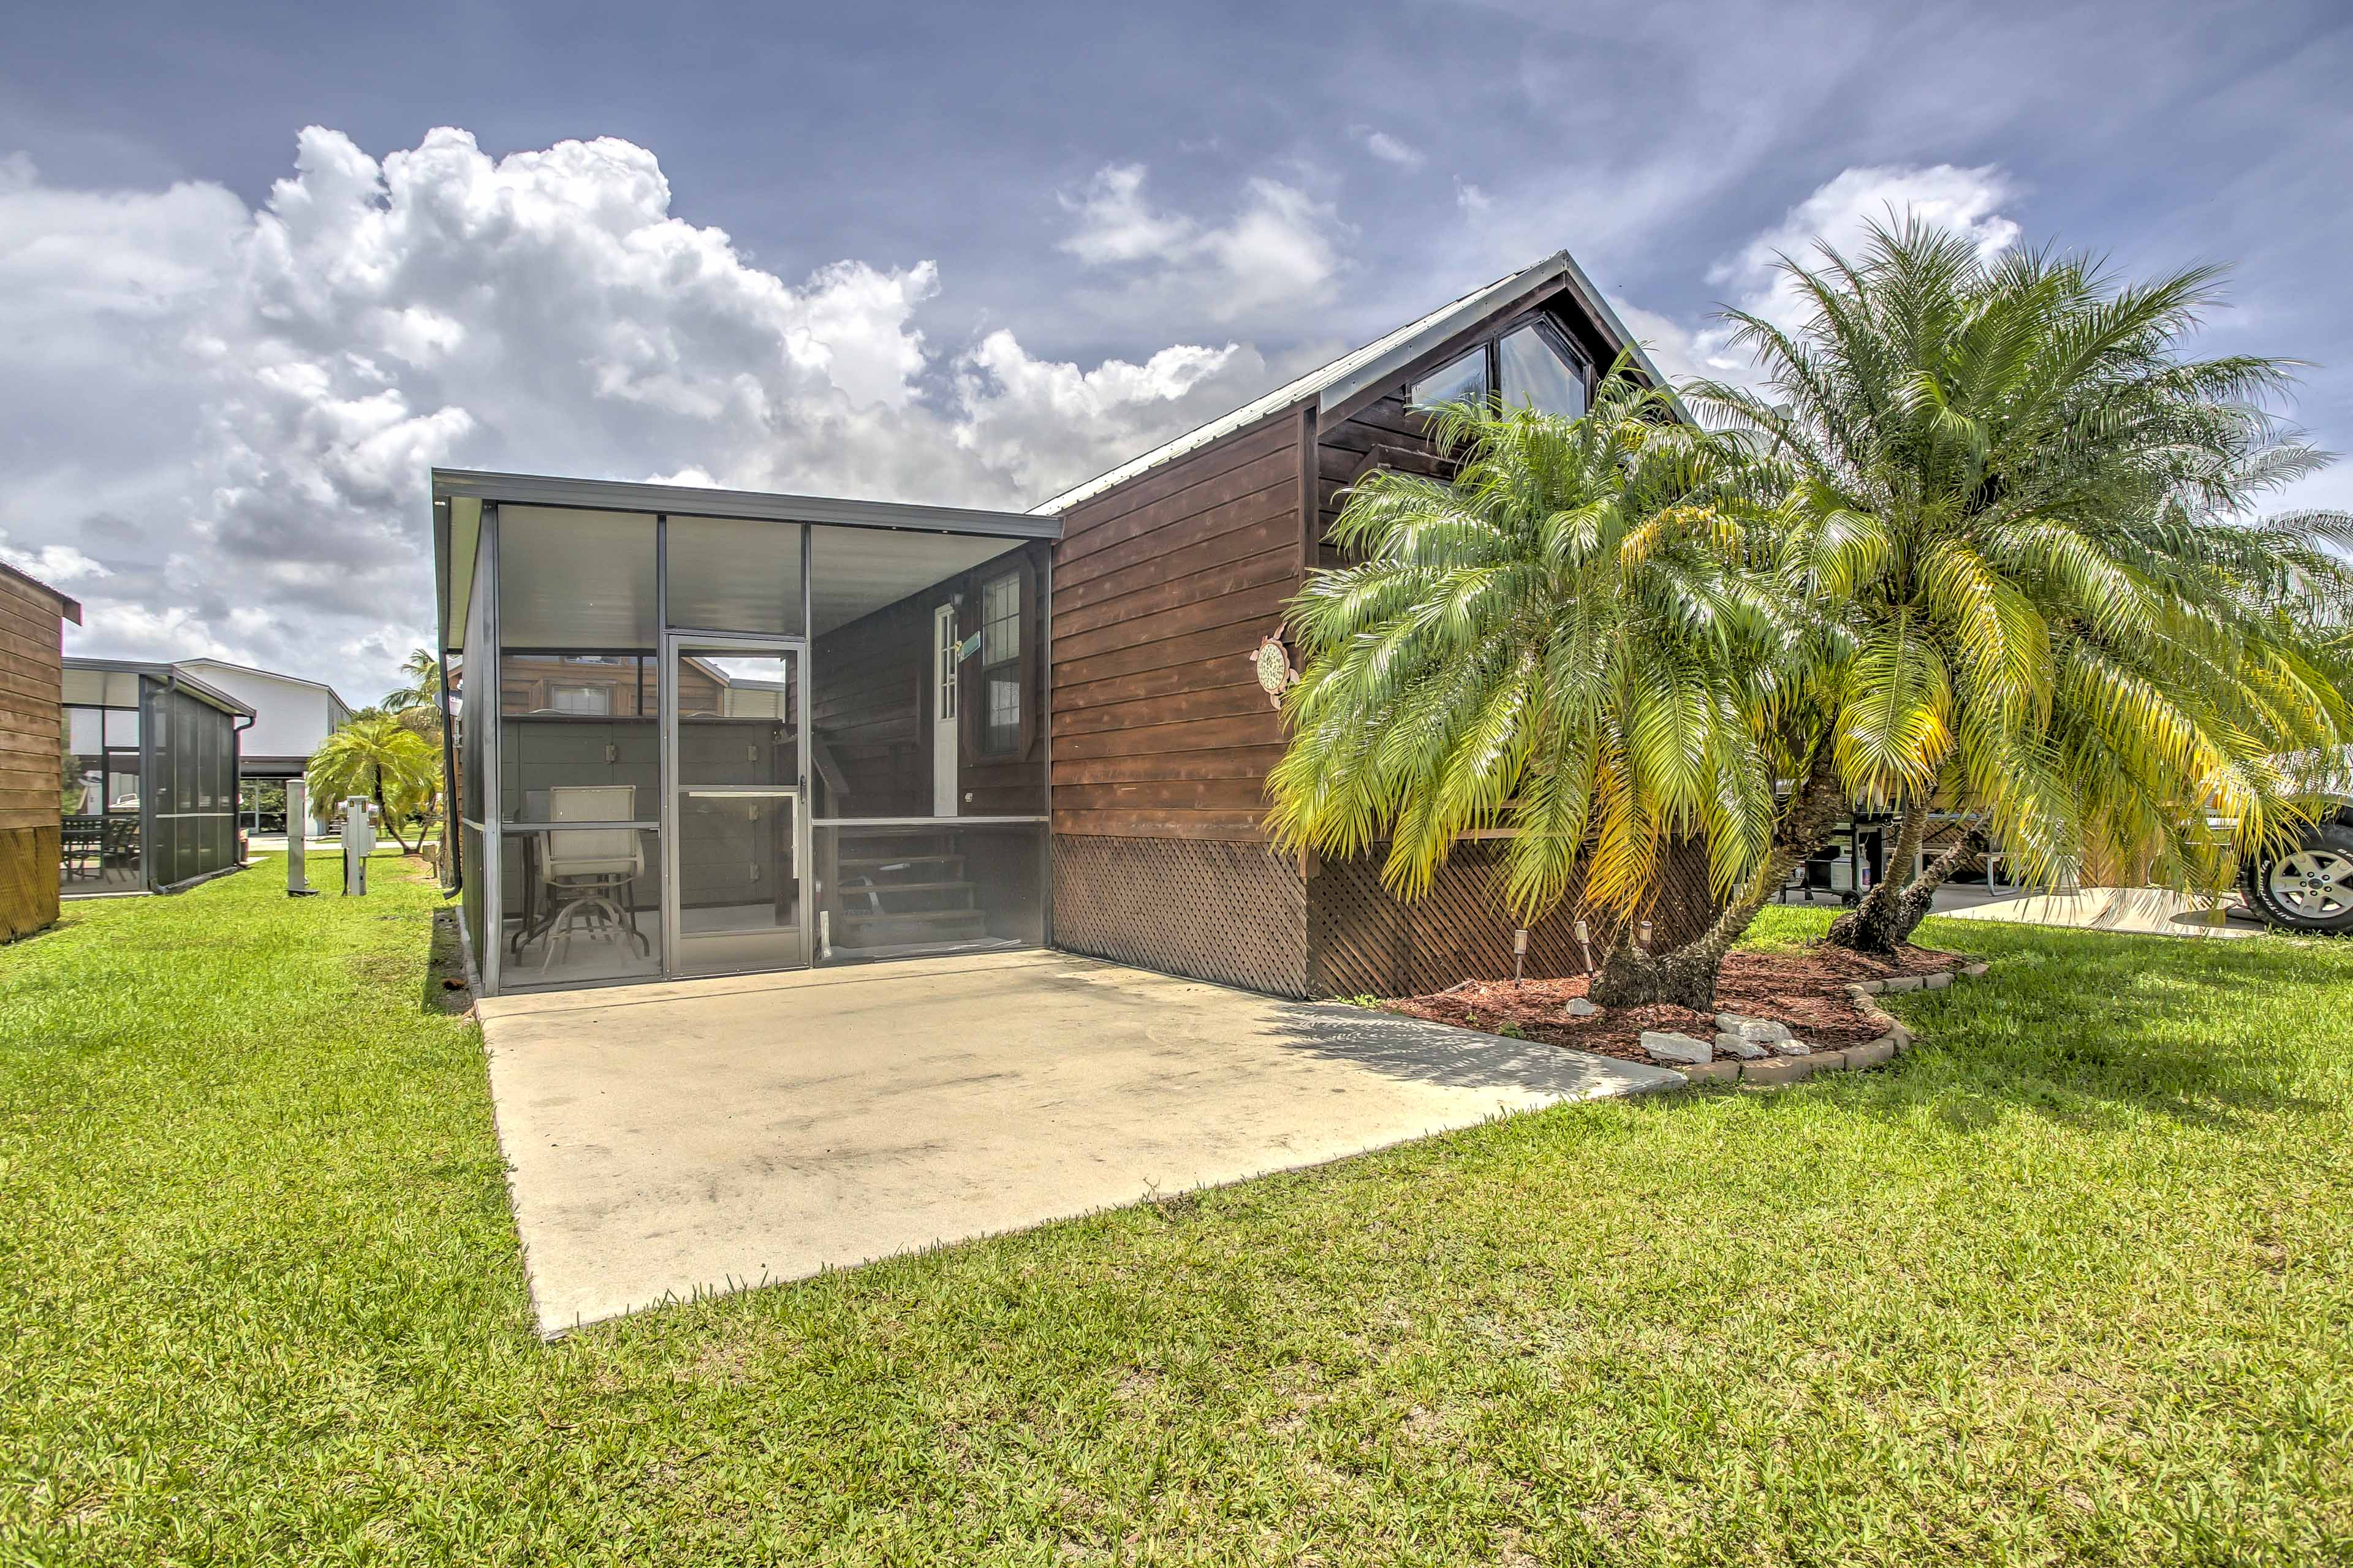 Experience Florida's Ten Thousand Islands like never before from  'Glades Haven,' a 1-bedroom, 1-bathroom Everglades City vacation rental cabin!